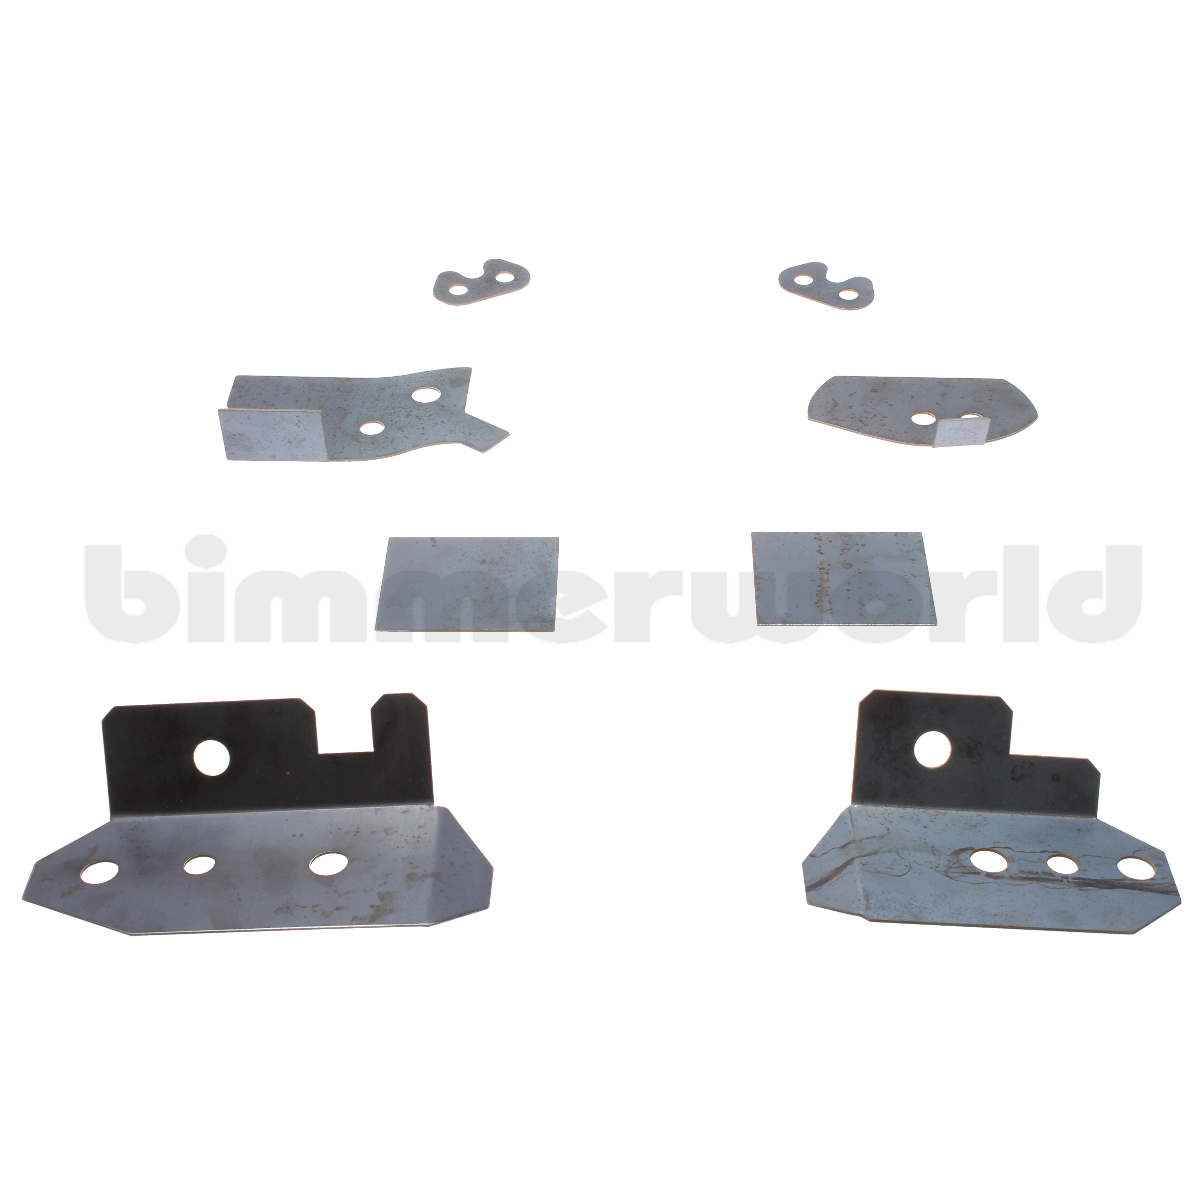 Rear sub-chassis repair Kit para BMW E46 chasis serie 3 Rear Subframe Reinforcem